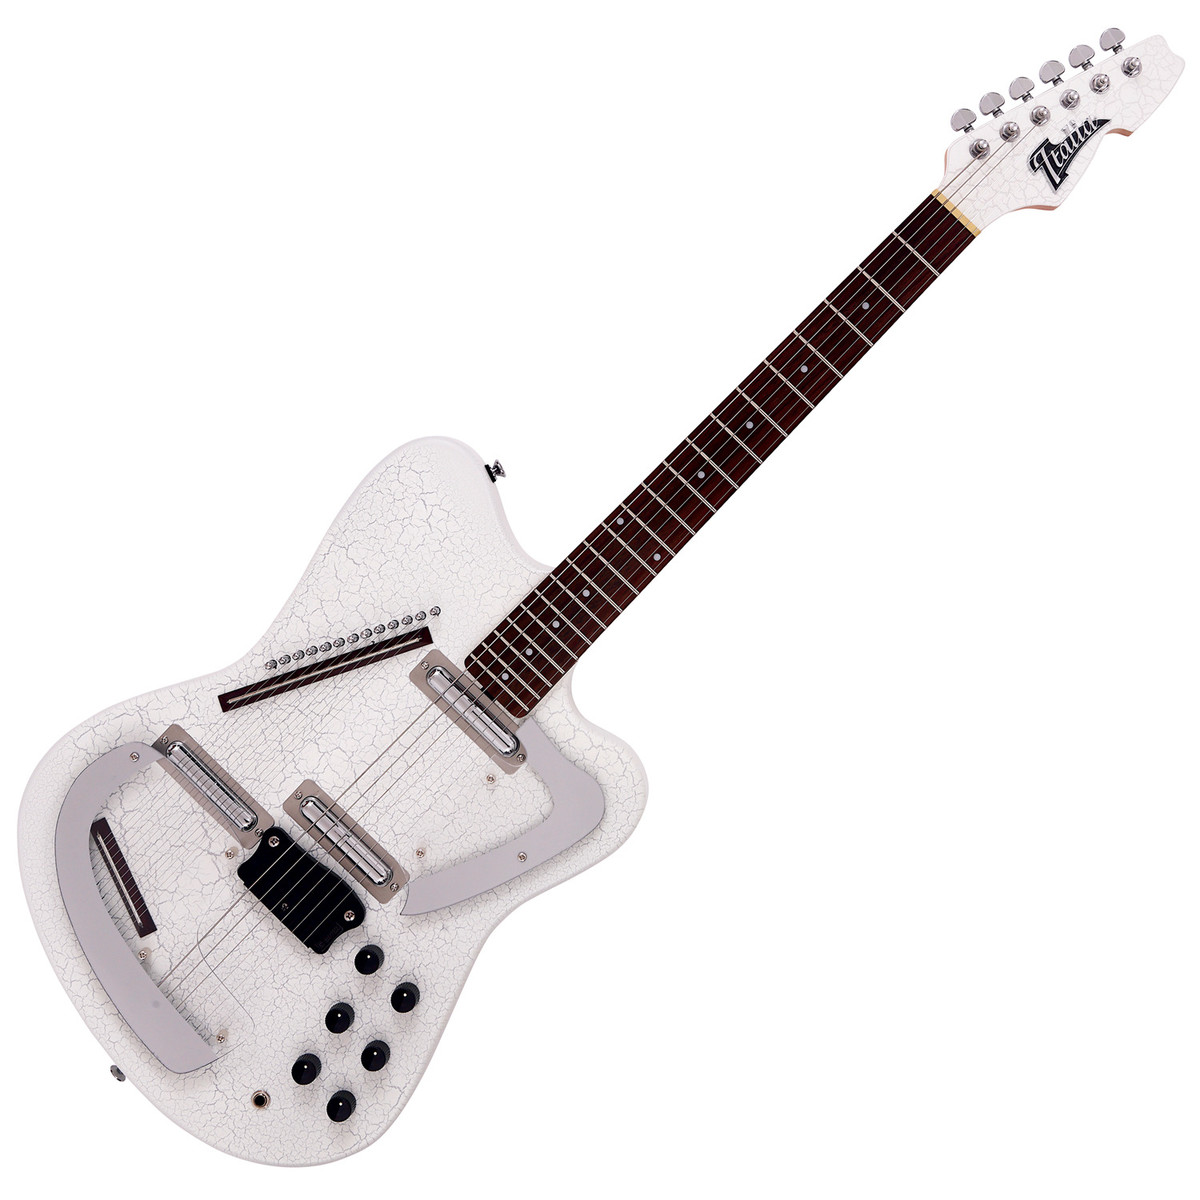 and electric rule automatic bilge pump wiring diagram italia modena sitar white crackle with gig bag